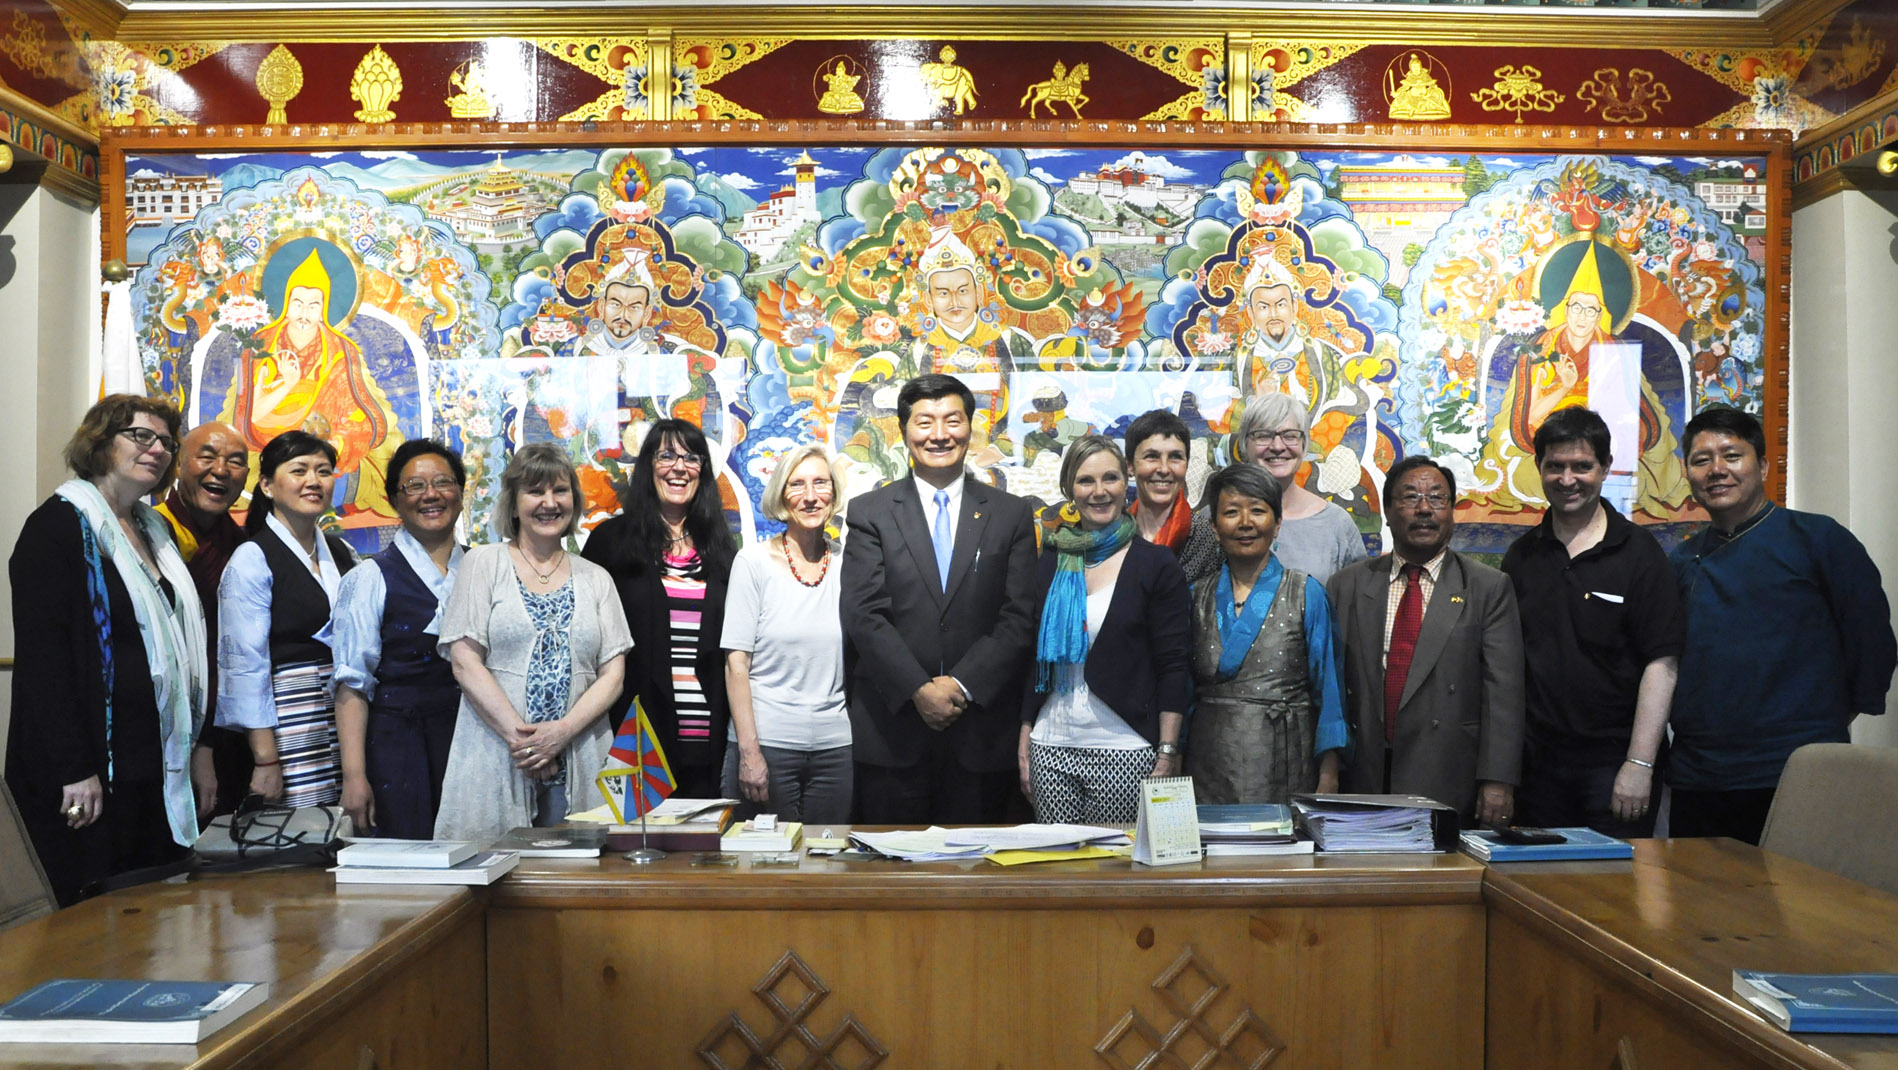 Sikyong Dr Lobsang Sangay with the swiss parliamentary delegation, members of Tibetan parliament from Europe, Ven Thupten Wangchen and Jampa Tsering Samdho, President and board members of Swiss Tibet Friendship and representative of Tibetan community in Switzerland and Liechtenstein. (Photo courtesy: tibet.net)